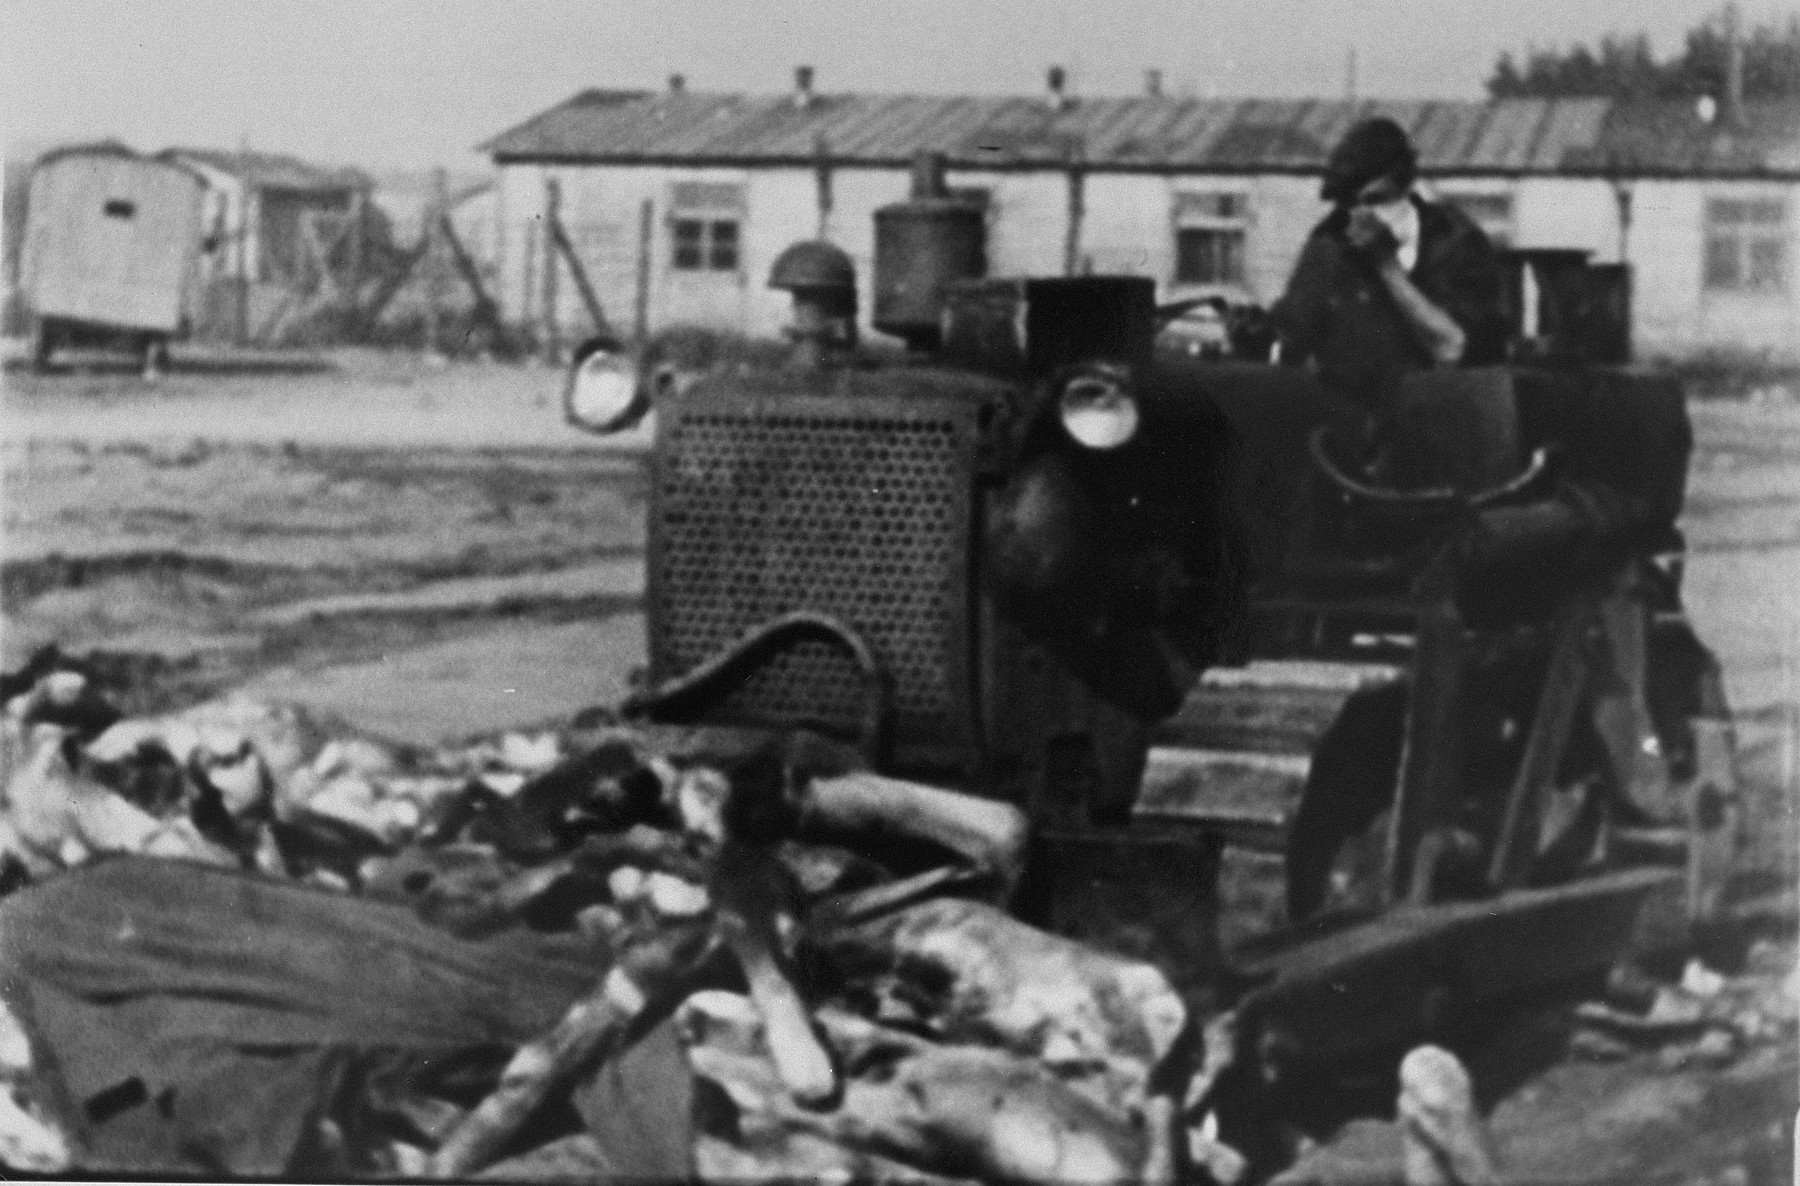 A British soldier clears corpses with a bulldozer in Bergen-Belsen concentration camp.